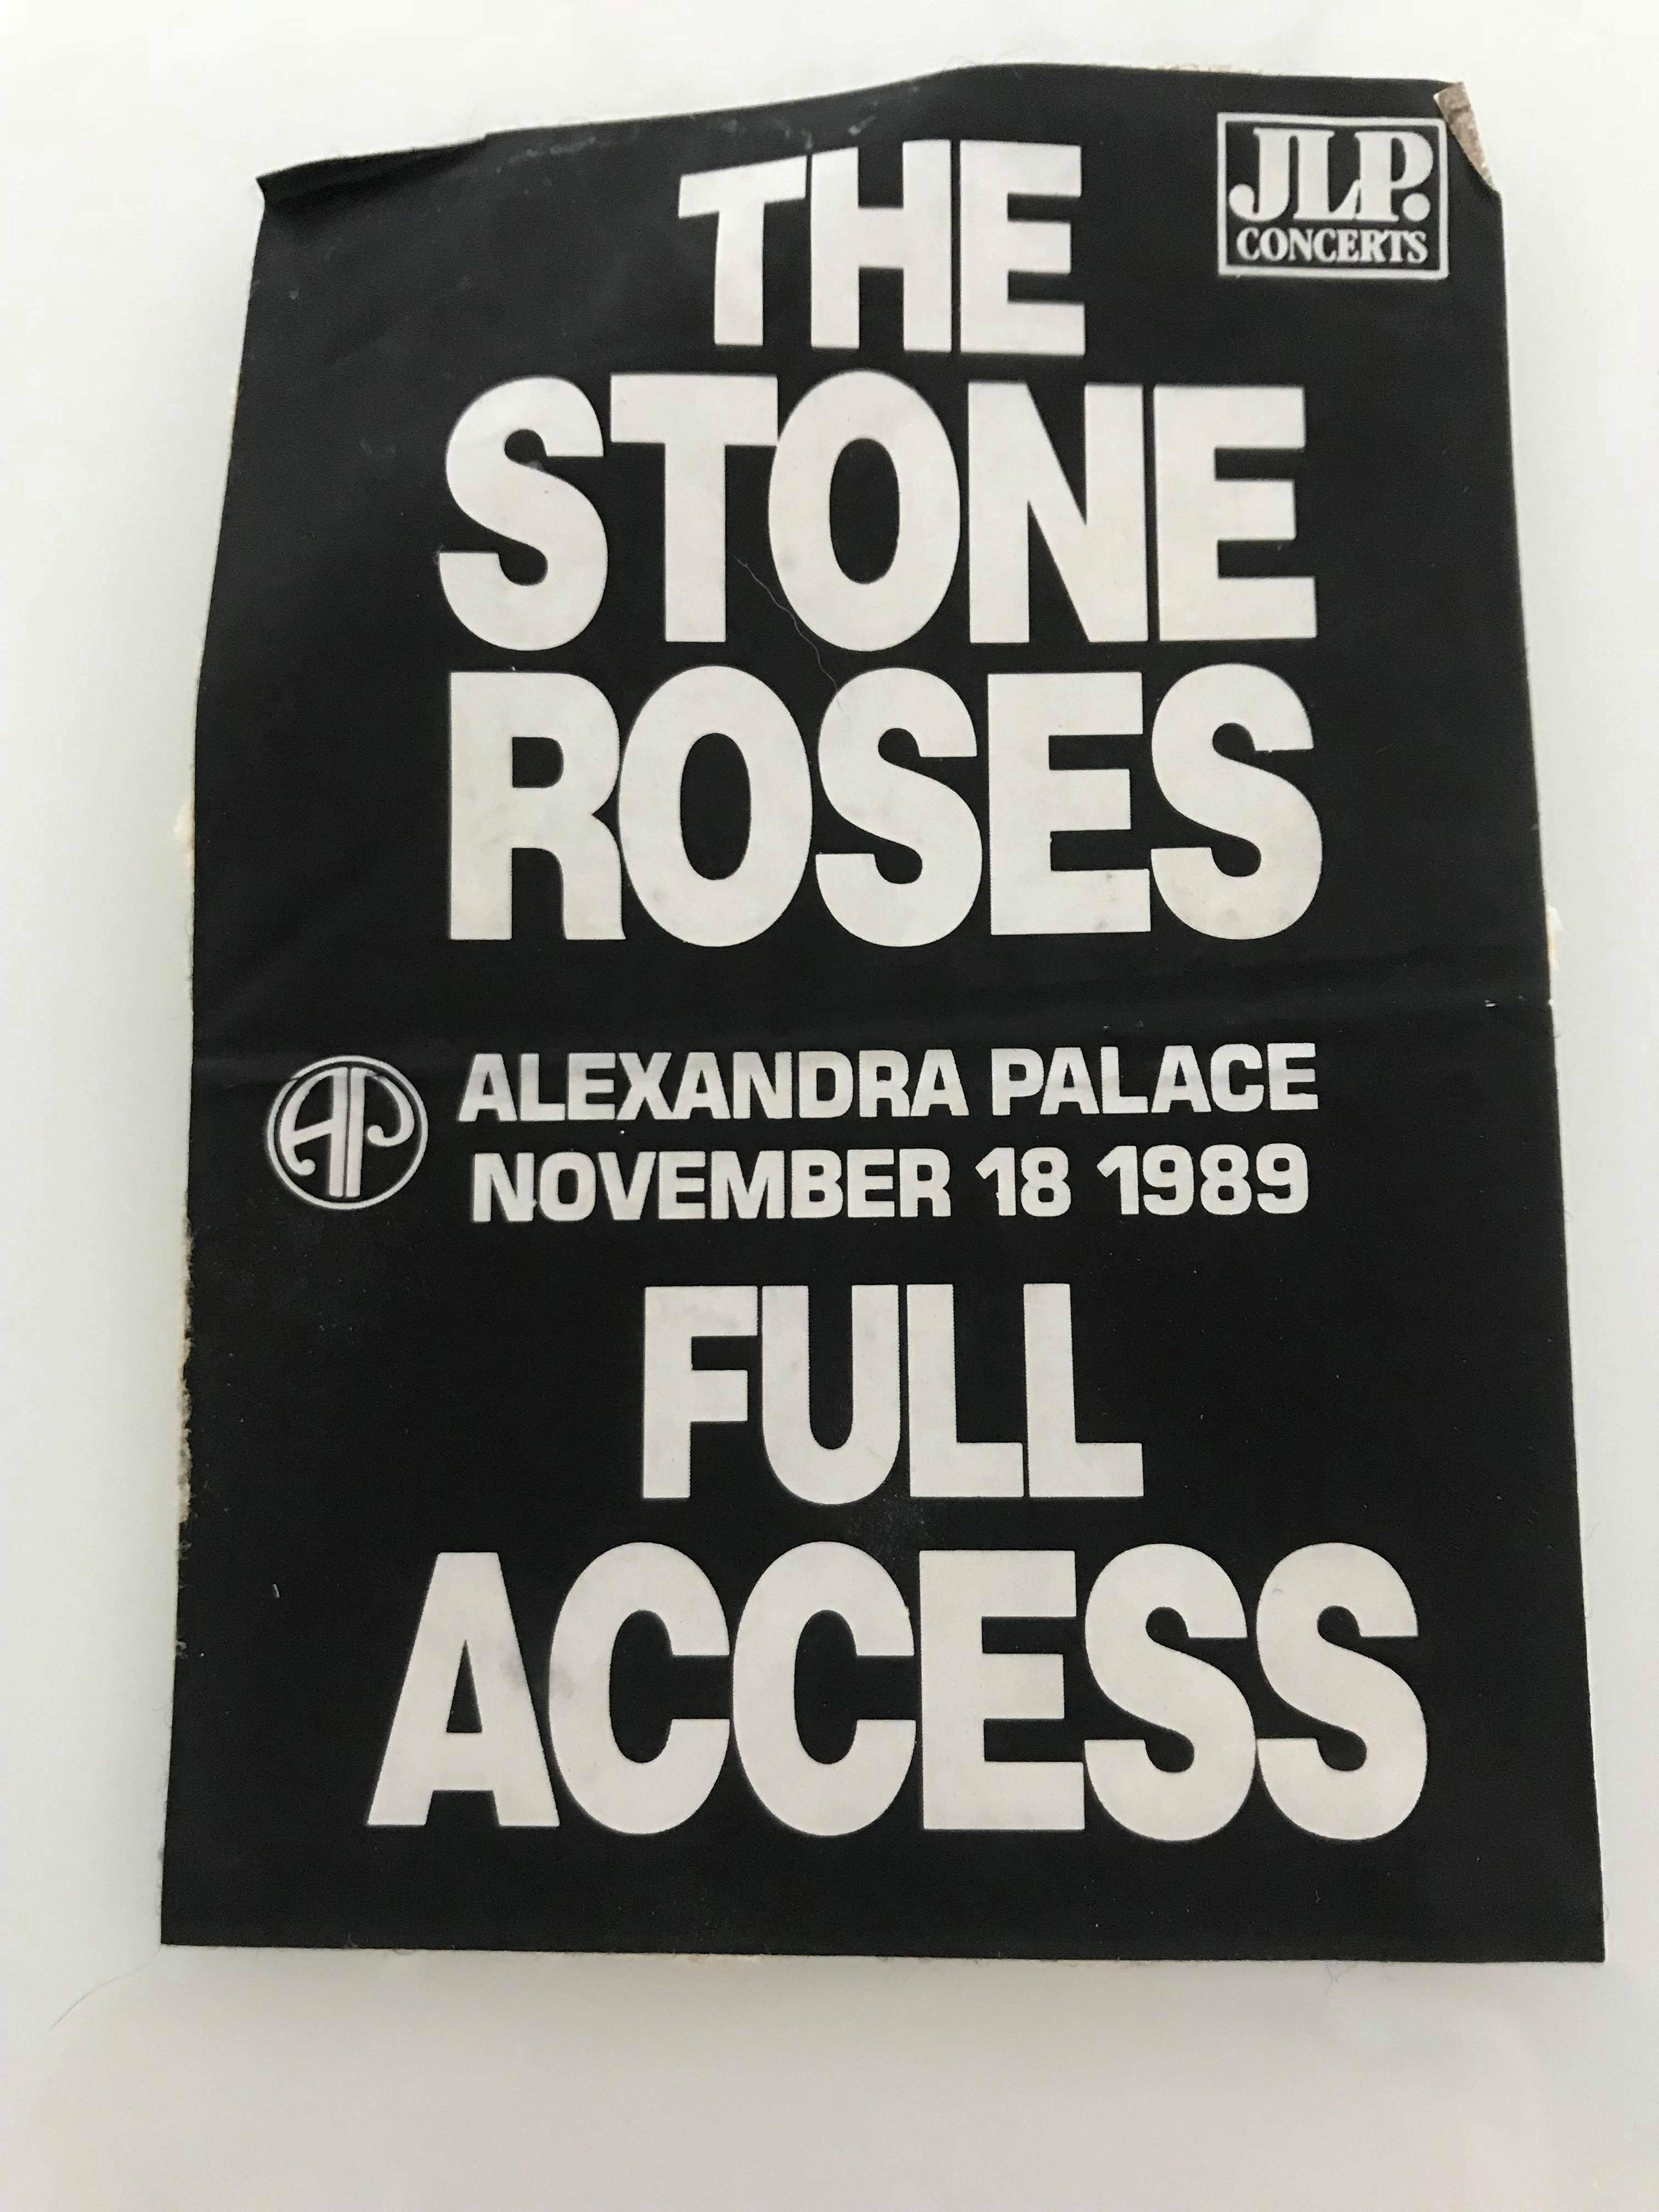 The Stone Roses All Things Nice Music Art Print Manchester